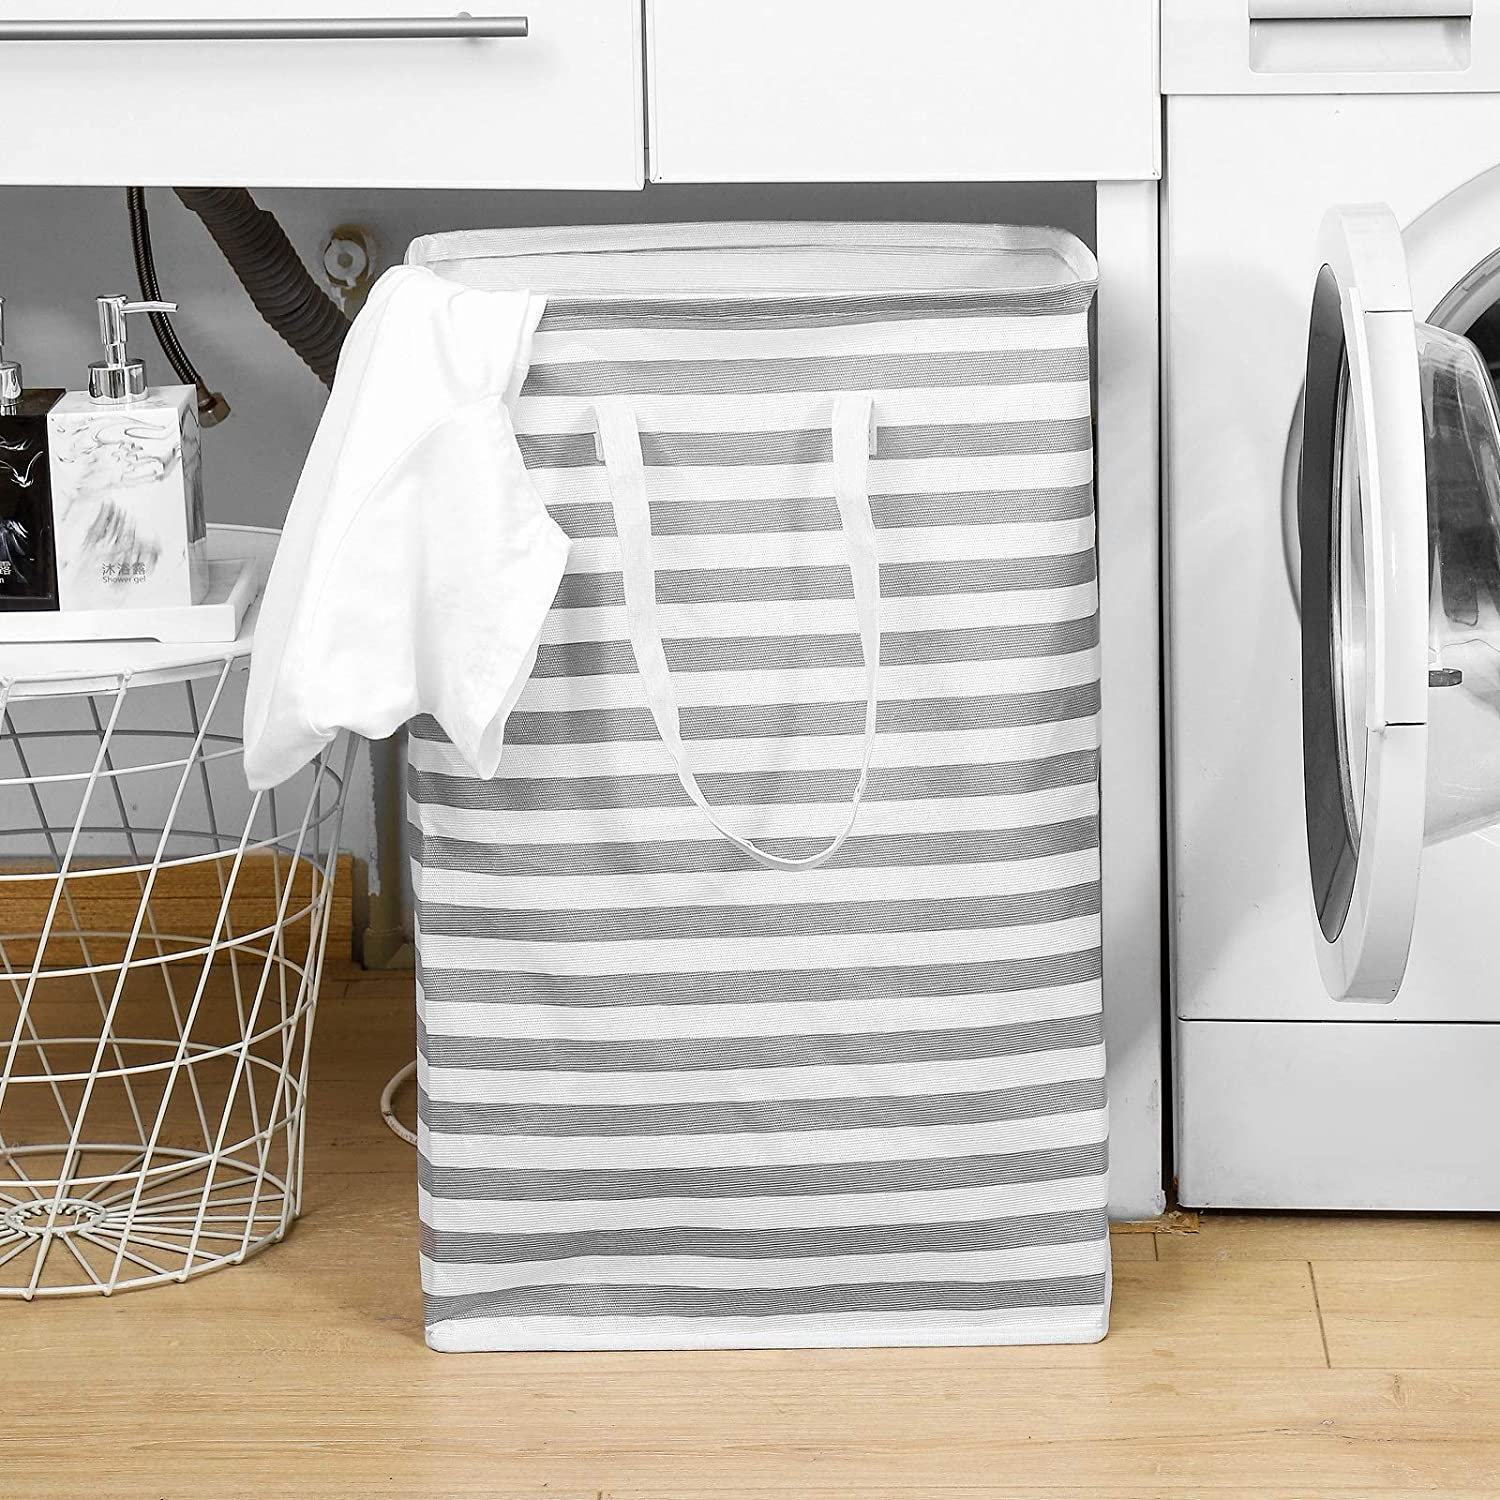 JELLYMONI Grey Striped Laundry Hamper, 72L Large Freestanding Water Resistant Clothes Hamper with Long Handles, Storage Basket, Storage Bags for Clothes Toys